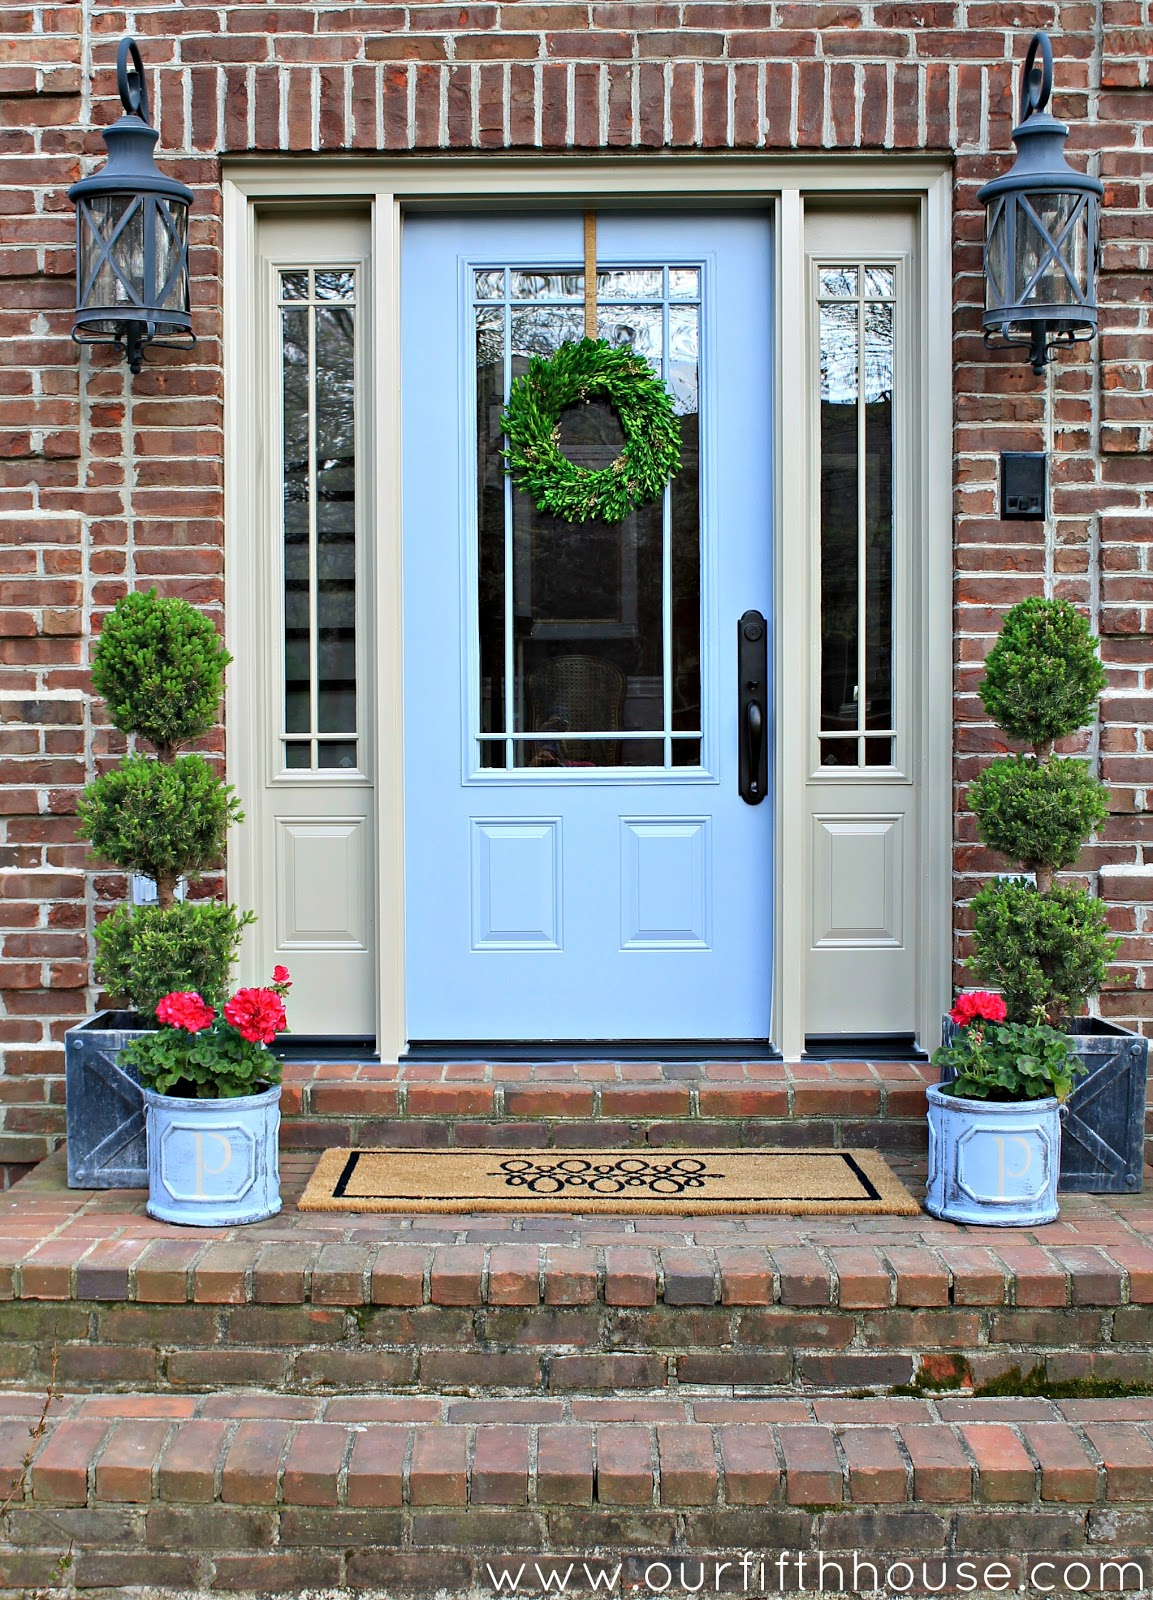 Our Fifth House Quick Curb Appeal: curb appeal doors